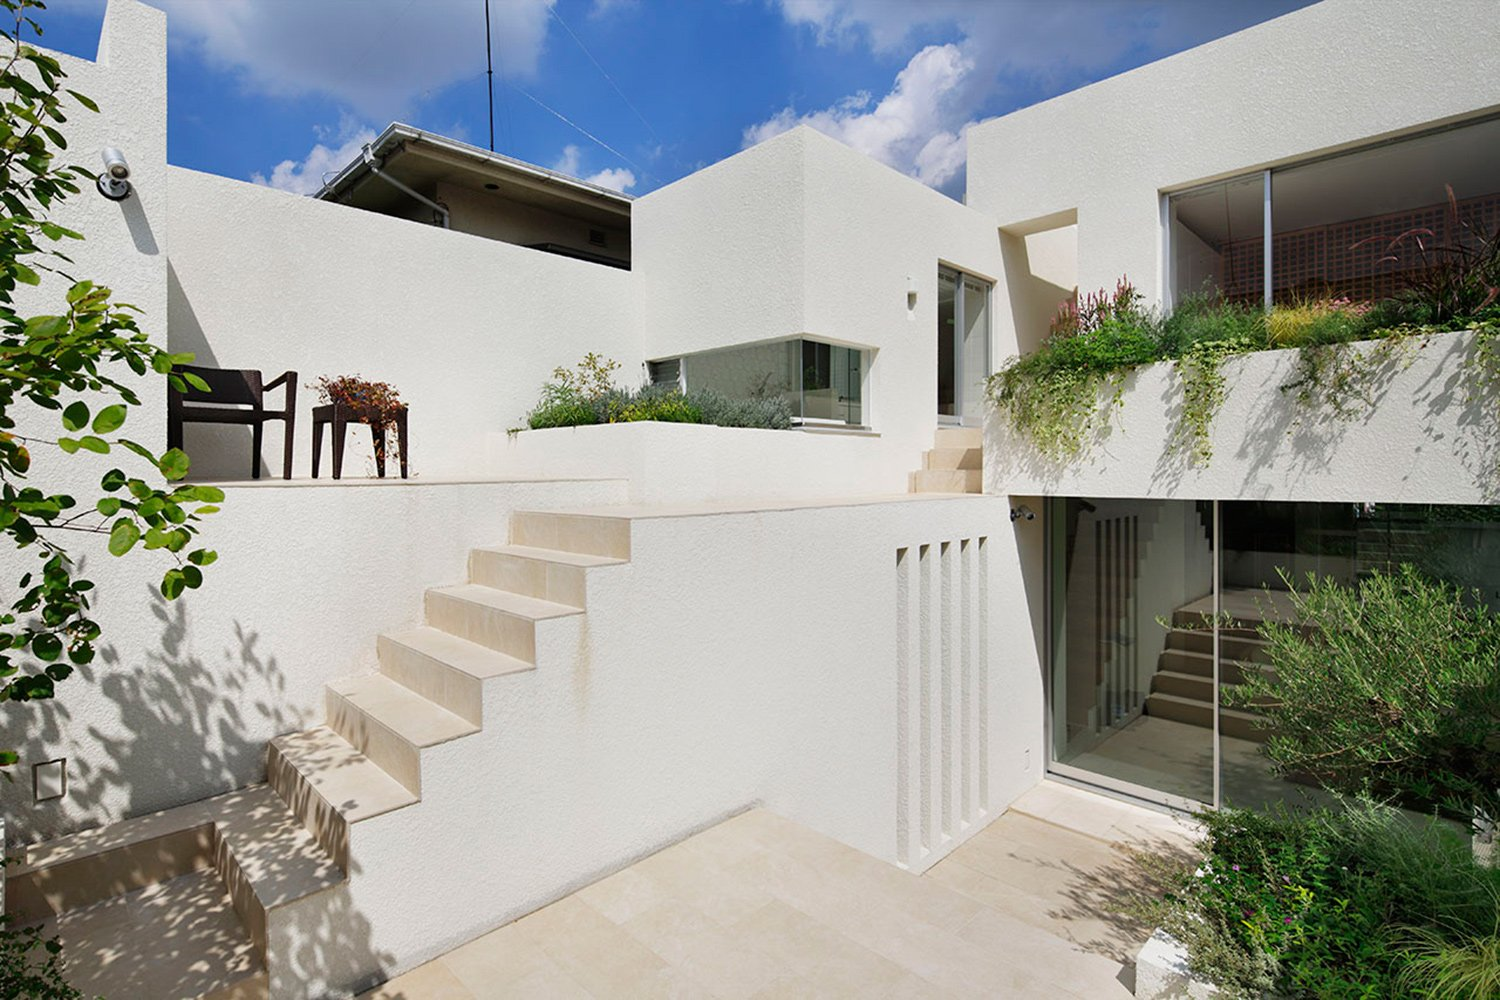 Courtyard. Terrace with a different level from the white outer wall. A rich place like a Mediterranean cliff settlement.You can feel nature wherever you are. }